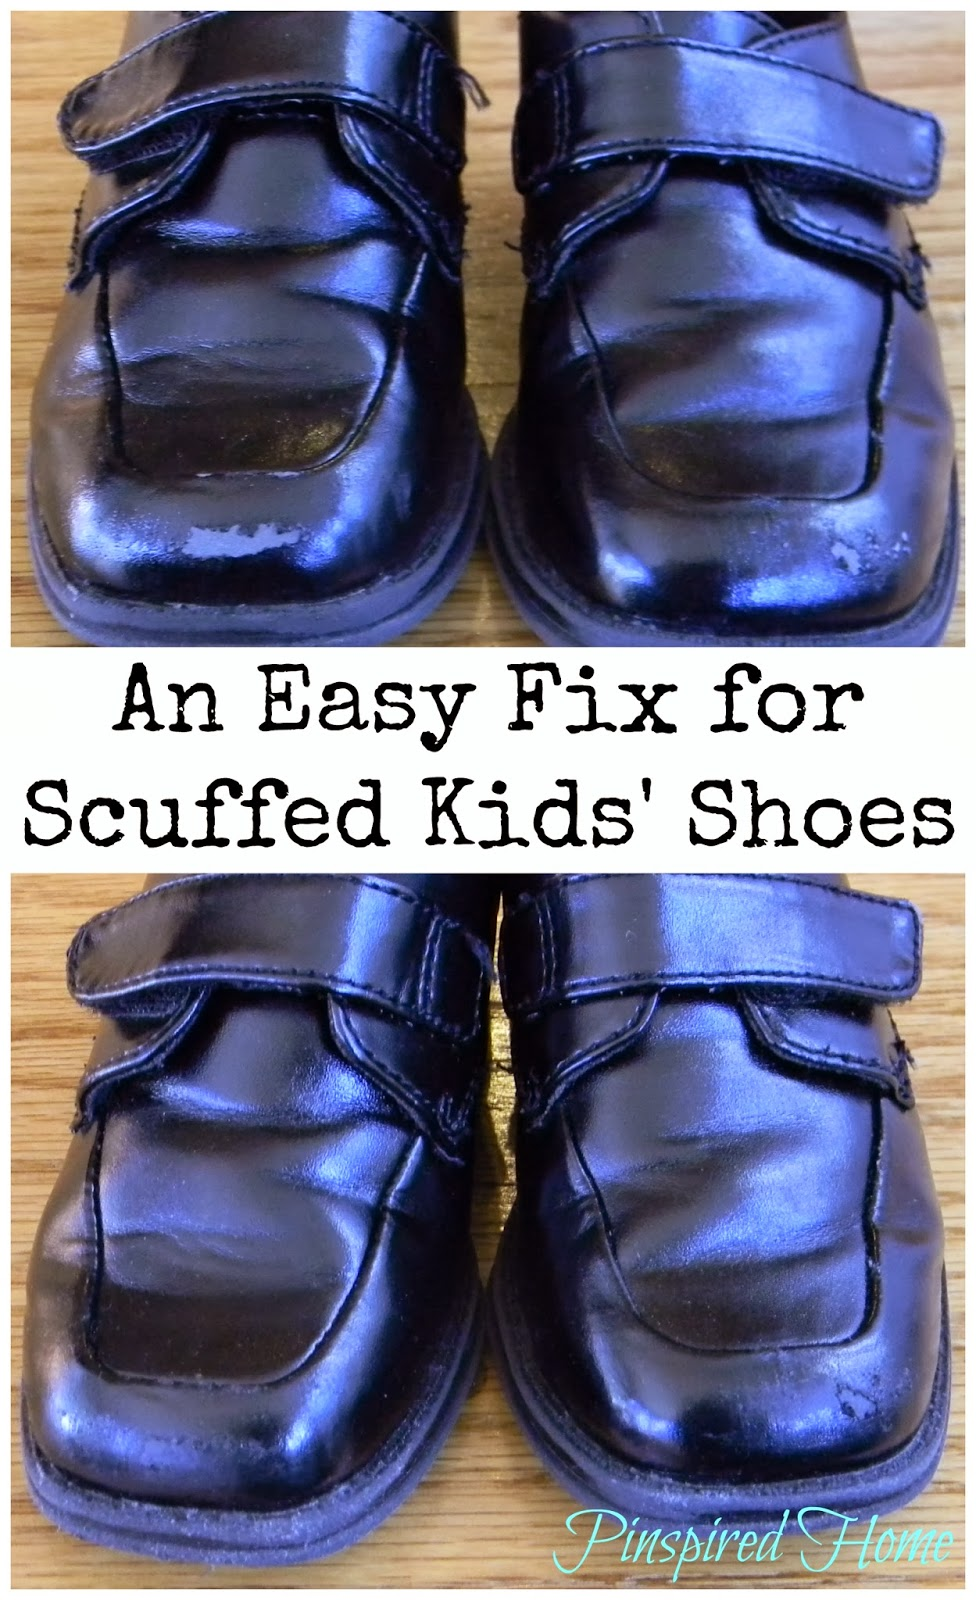 Pinspired Home: Tips & Tricks Thursday: An Easy Fix for Scuffed Shoes